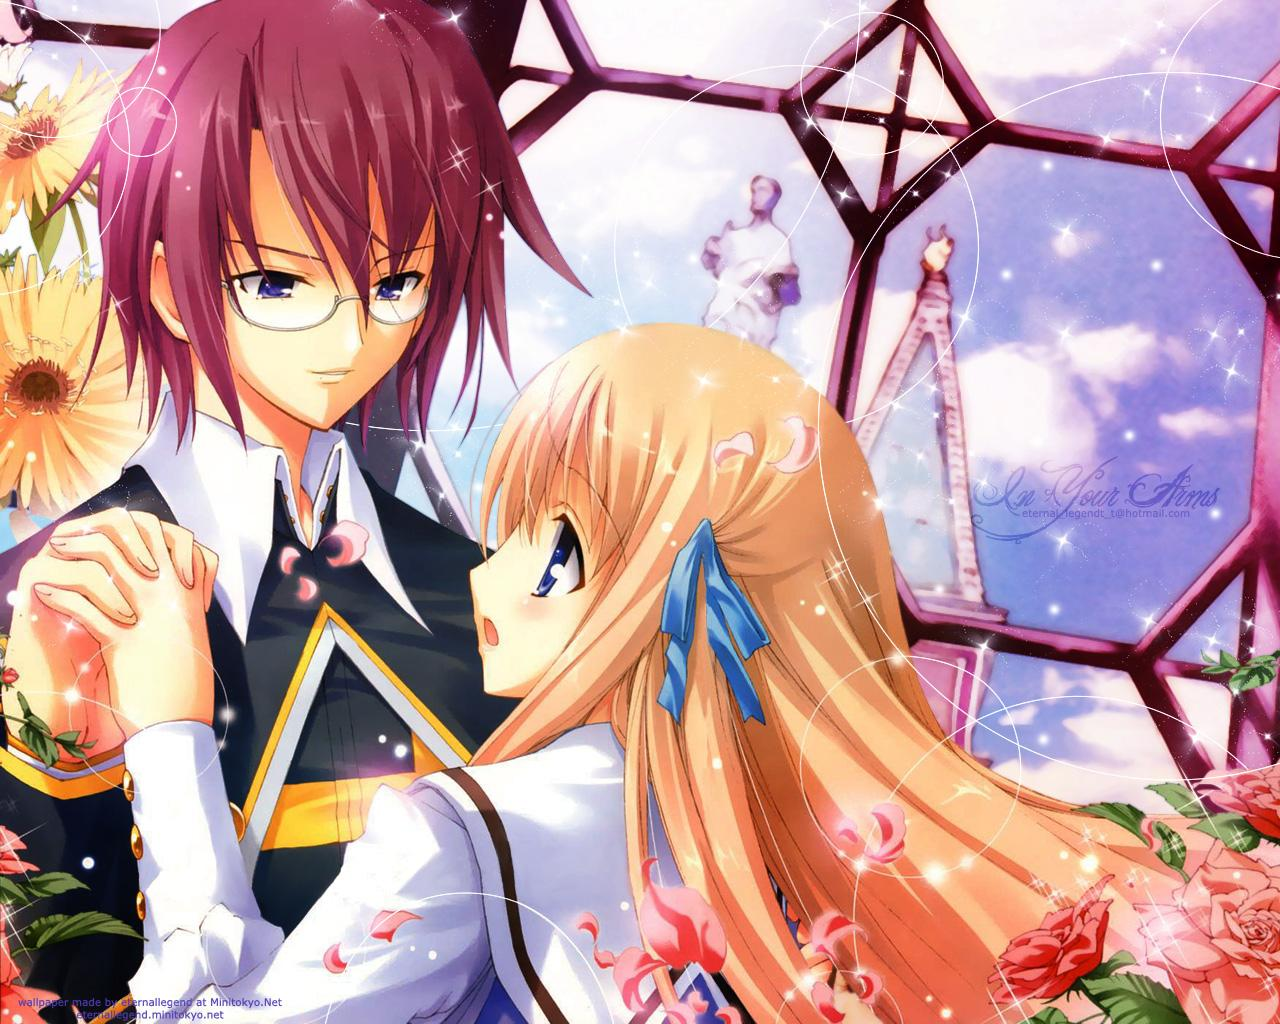 Cute Kc Name Laptop Wallpaper The World Of Anime The Favorite Couple An Eternal Love